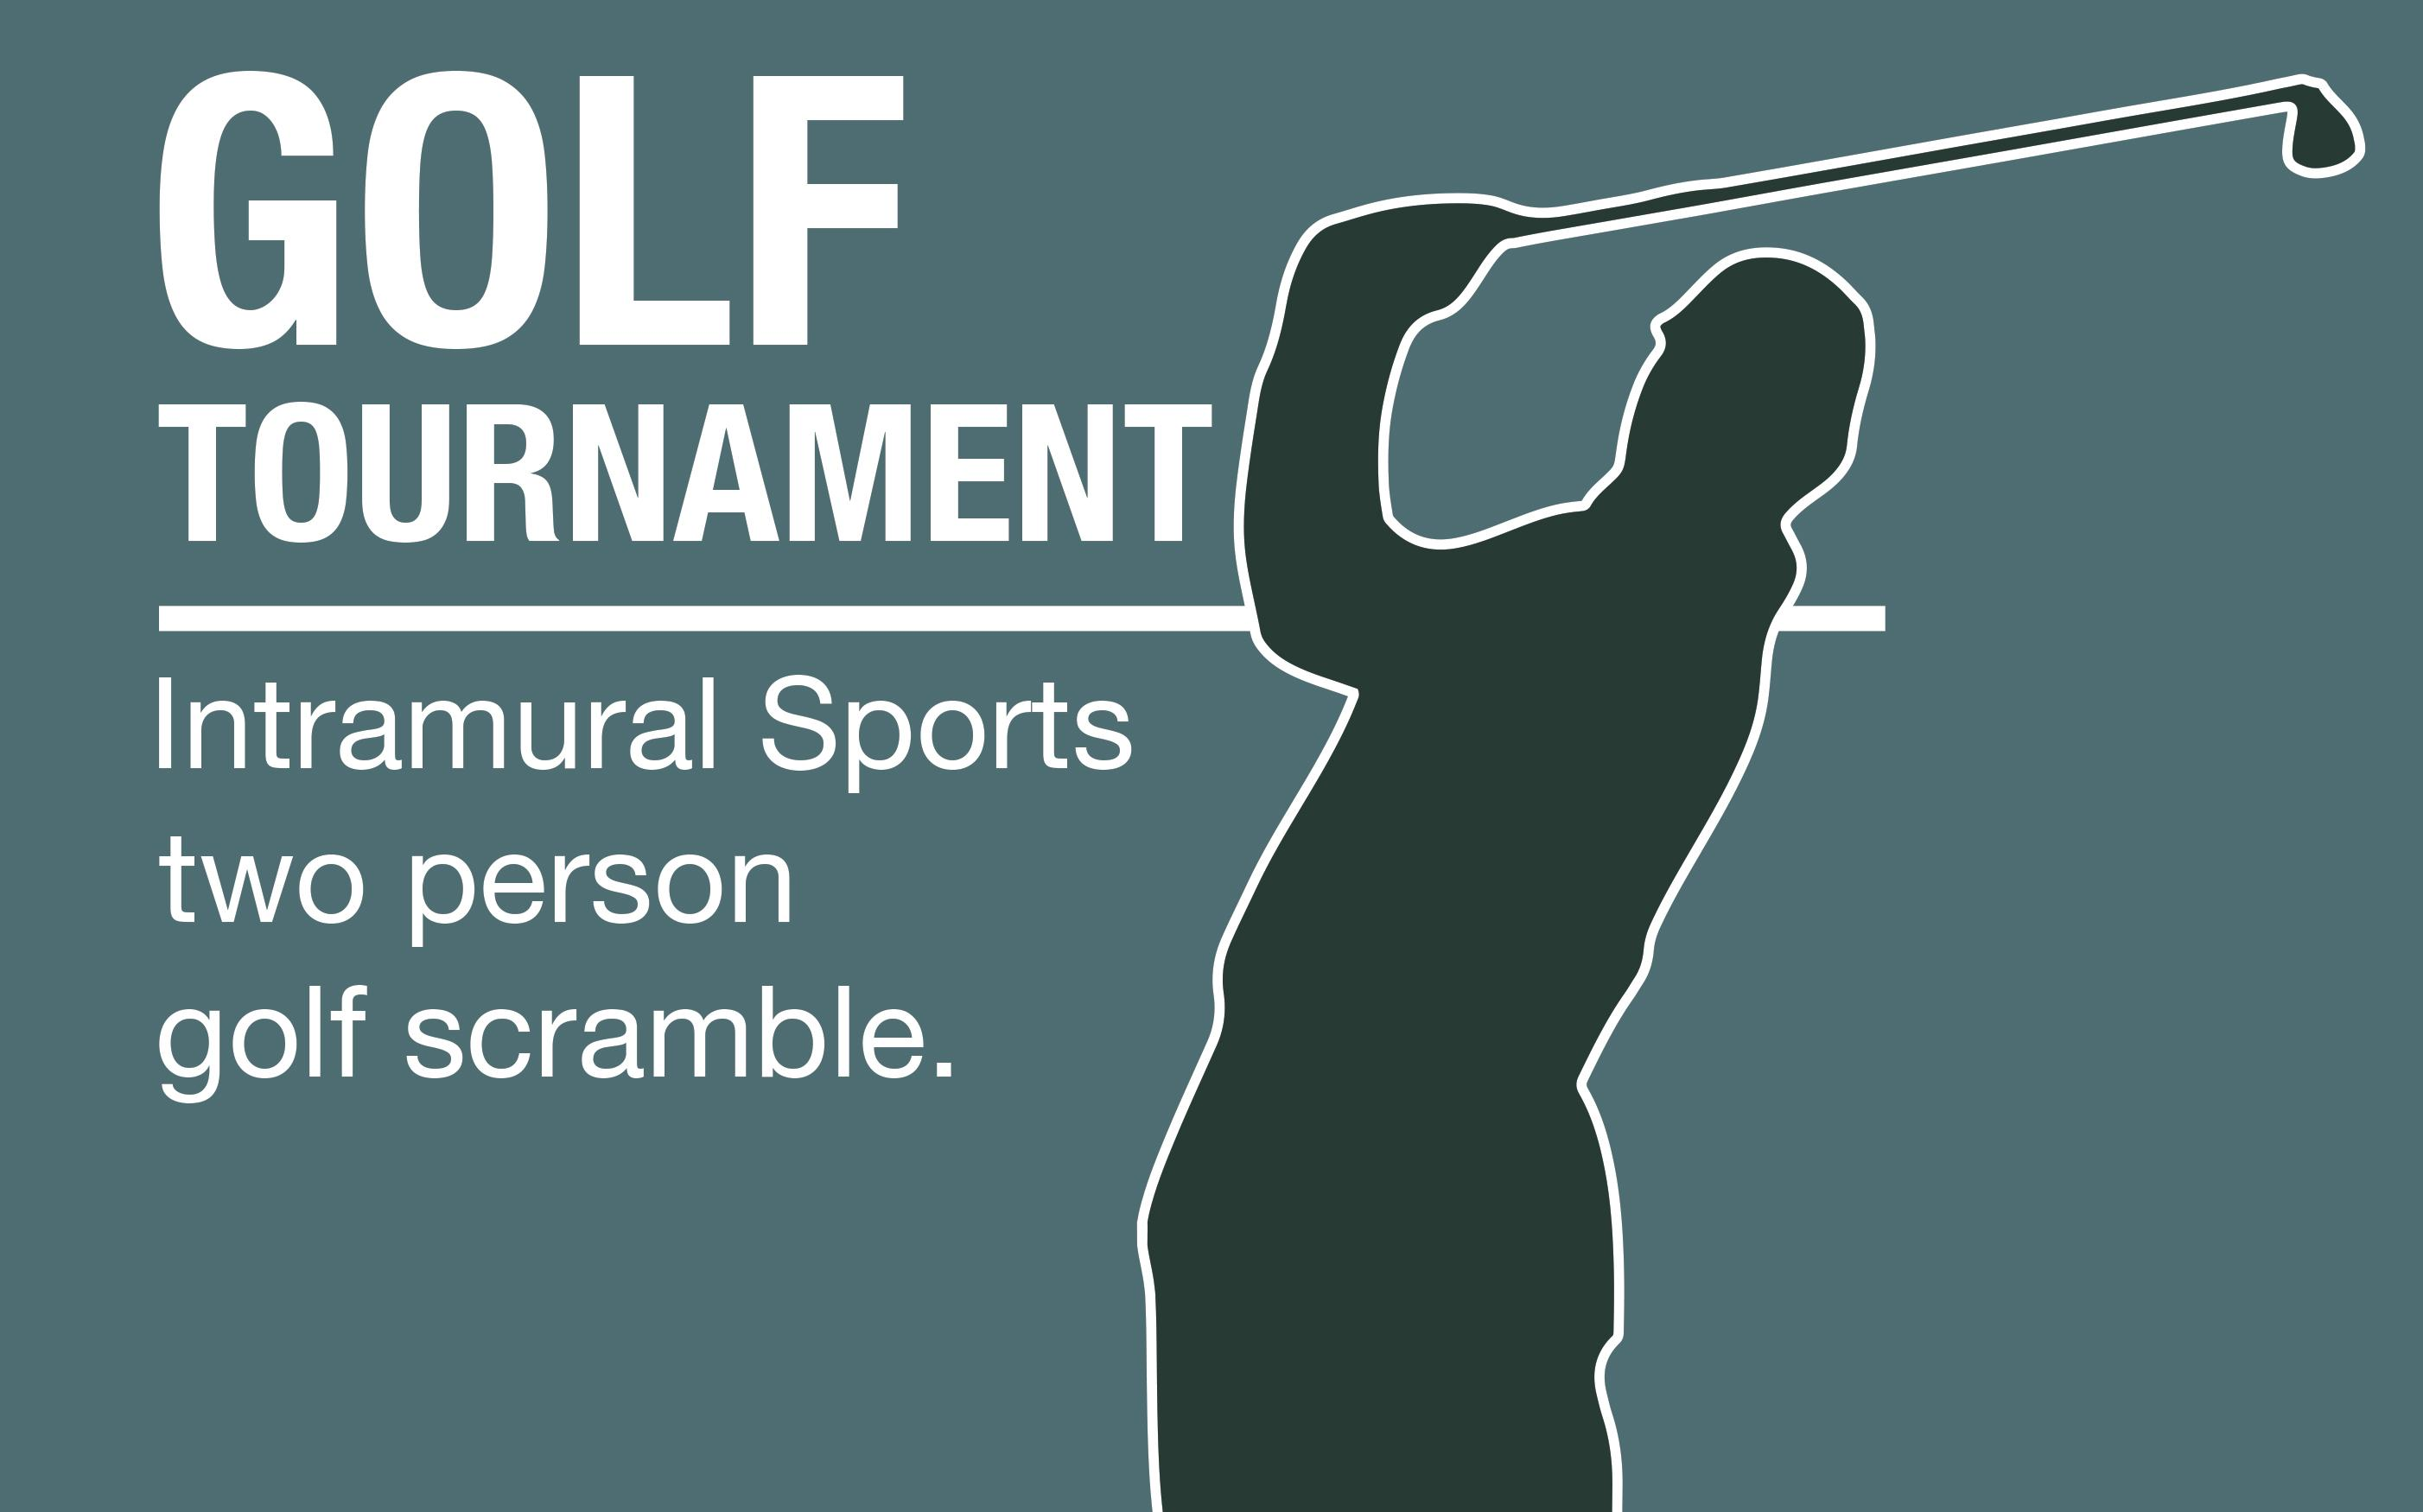 Registration remains open until April 6. $30 greens fee also includes a golf cart and lunch.